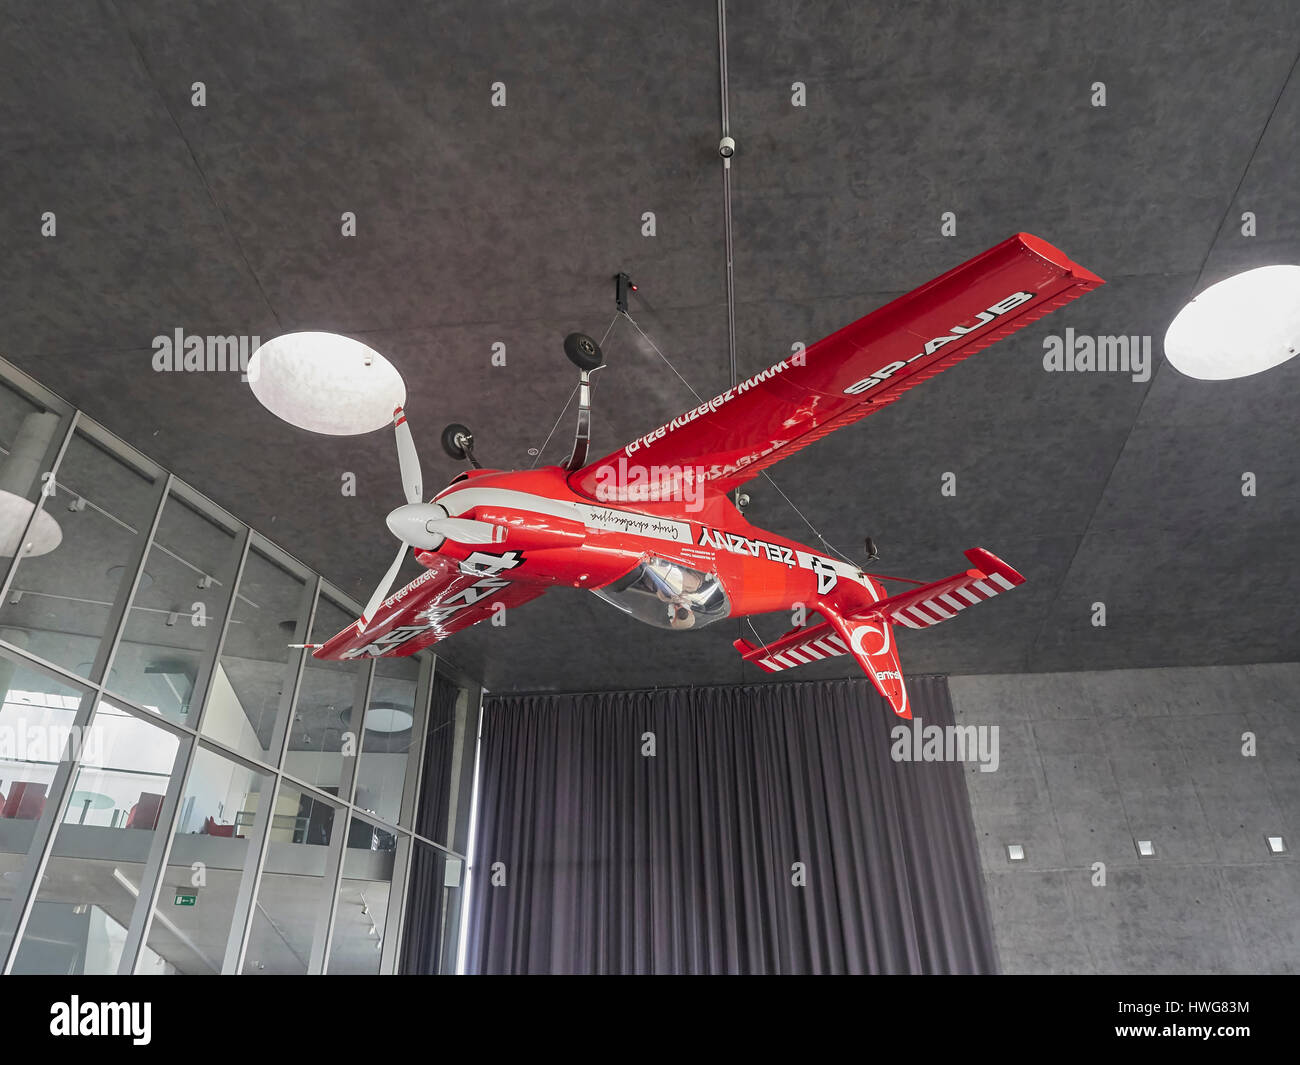 Zlin 50L aerobatic plane from Czech republic at the Krakow Aviation museum in Poland - Stock Image